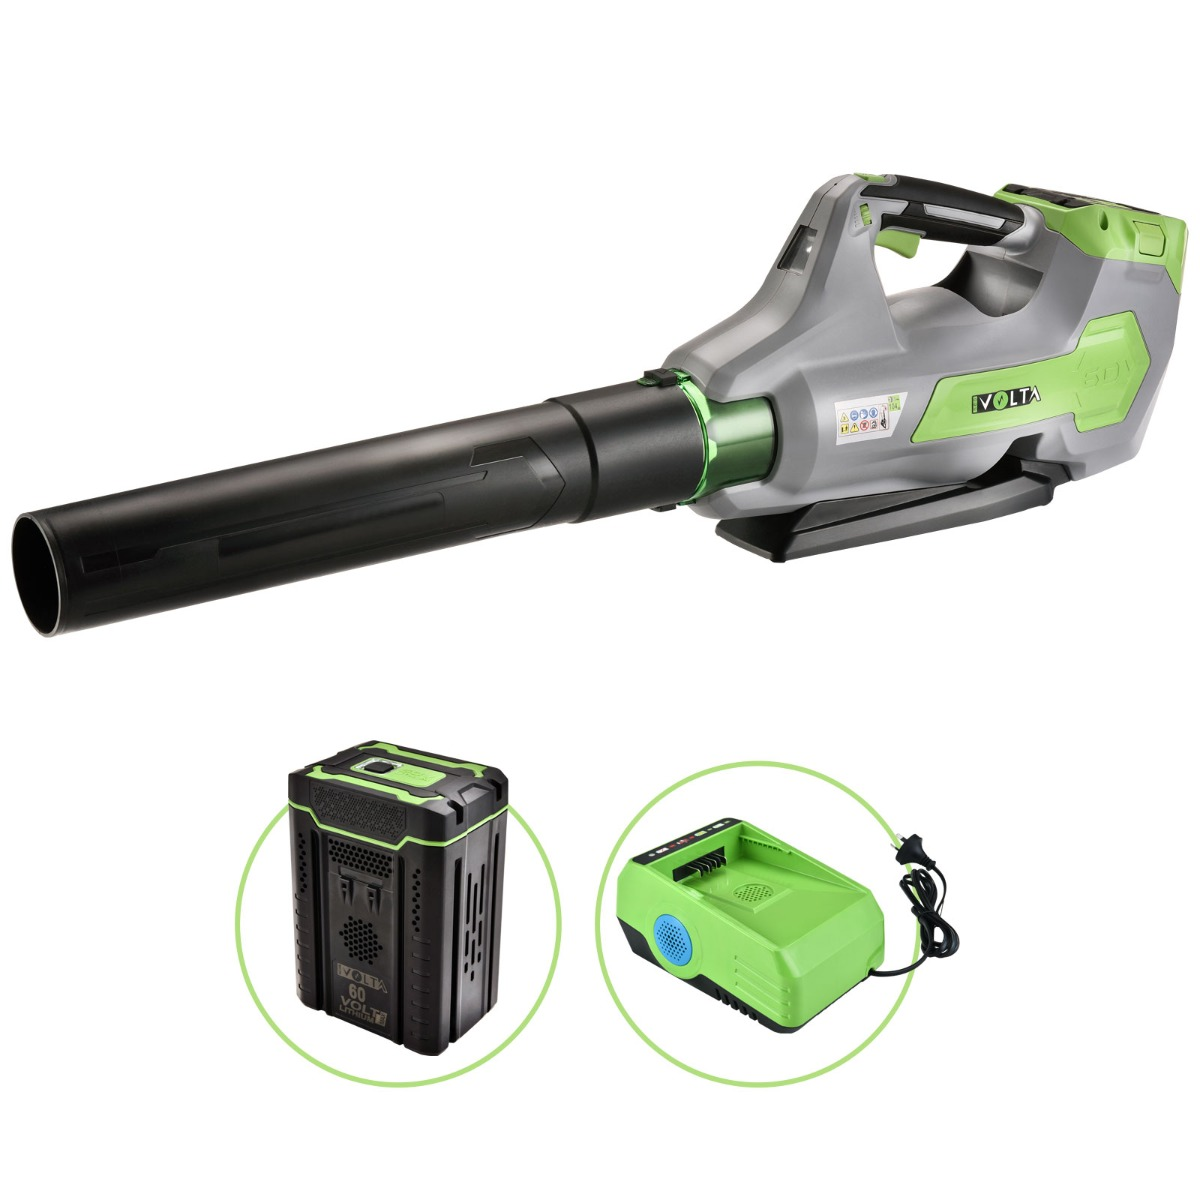 Neovolta 60V Cordless Brushless Blower Kit Lithium Ion Handheld